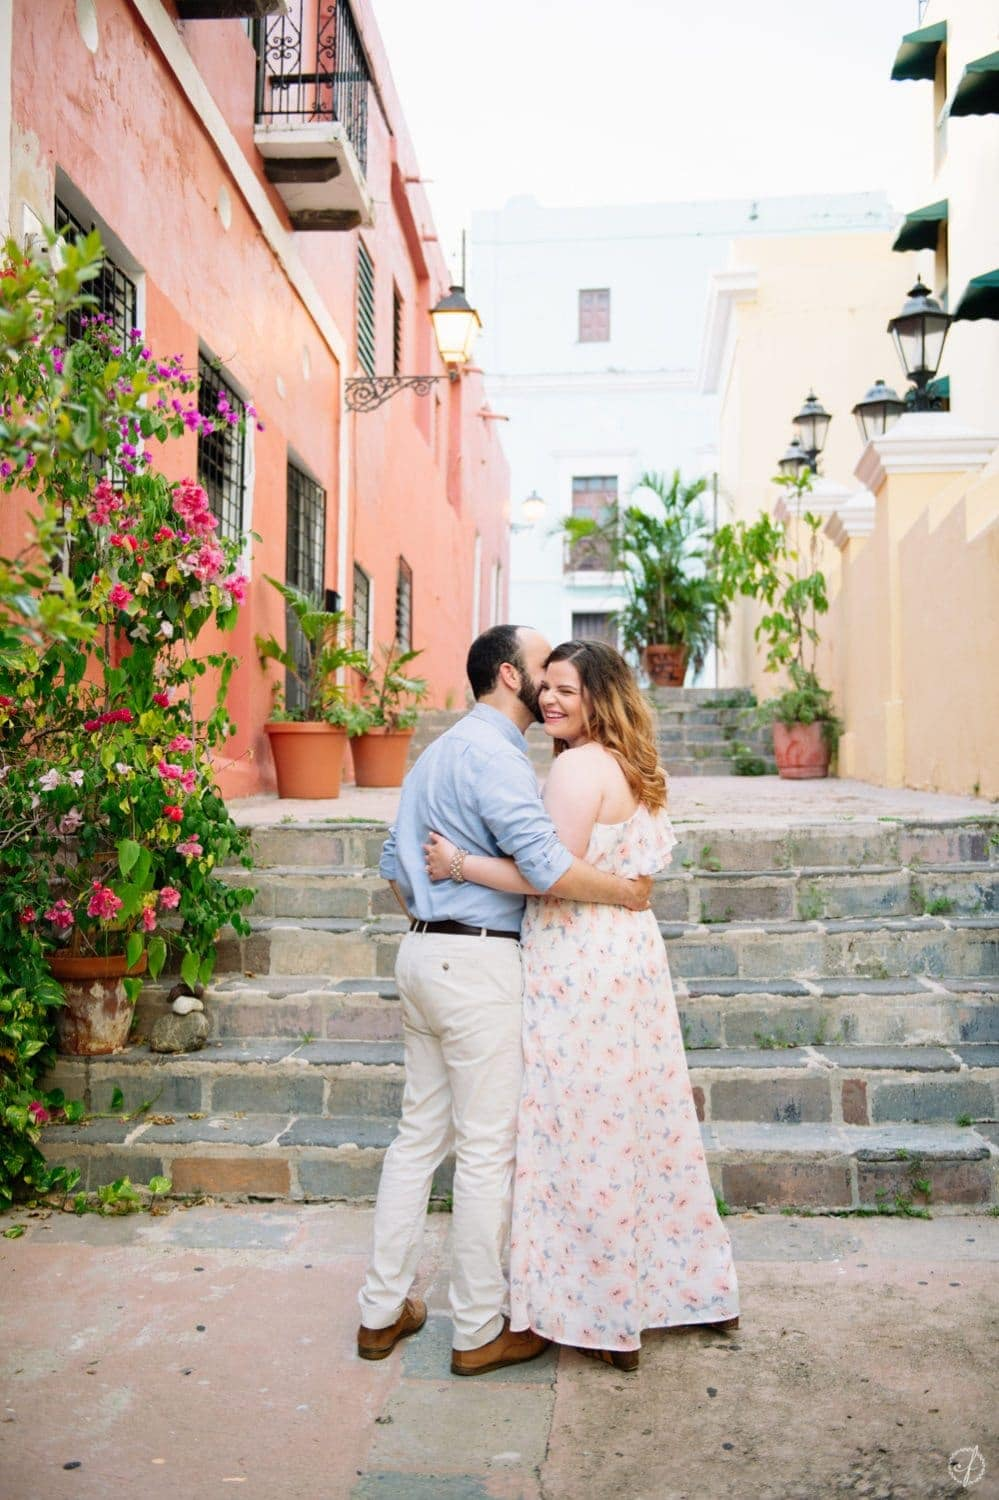 hacienda-siesta-alegre-destination-wedding-photographer-puerto-rico-017-1 Lovely and Spontaneous Engagement Photos at Old San Juan